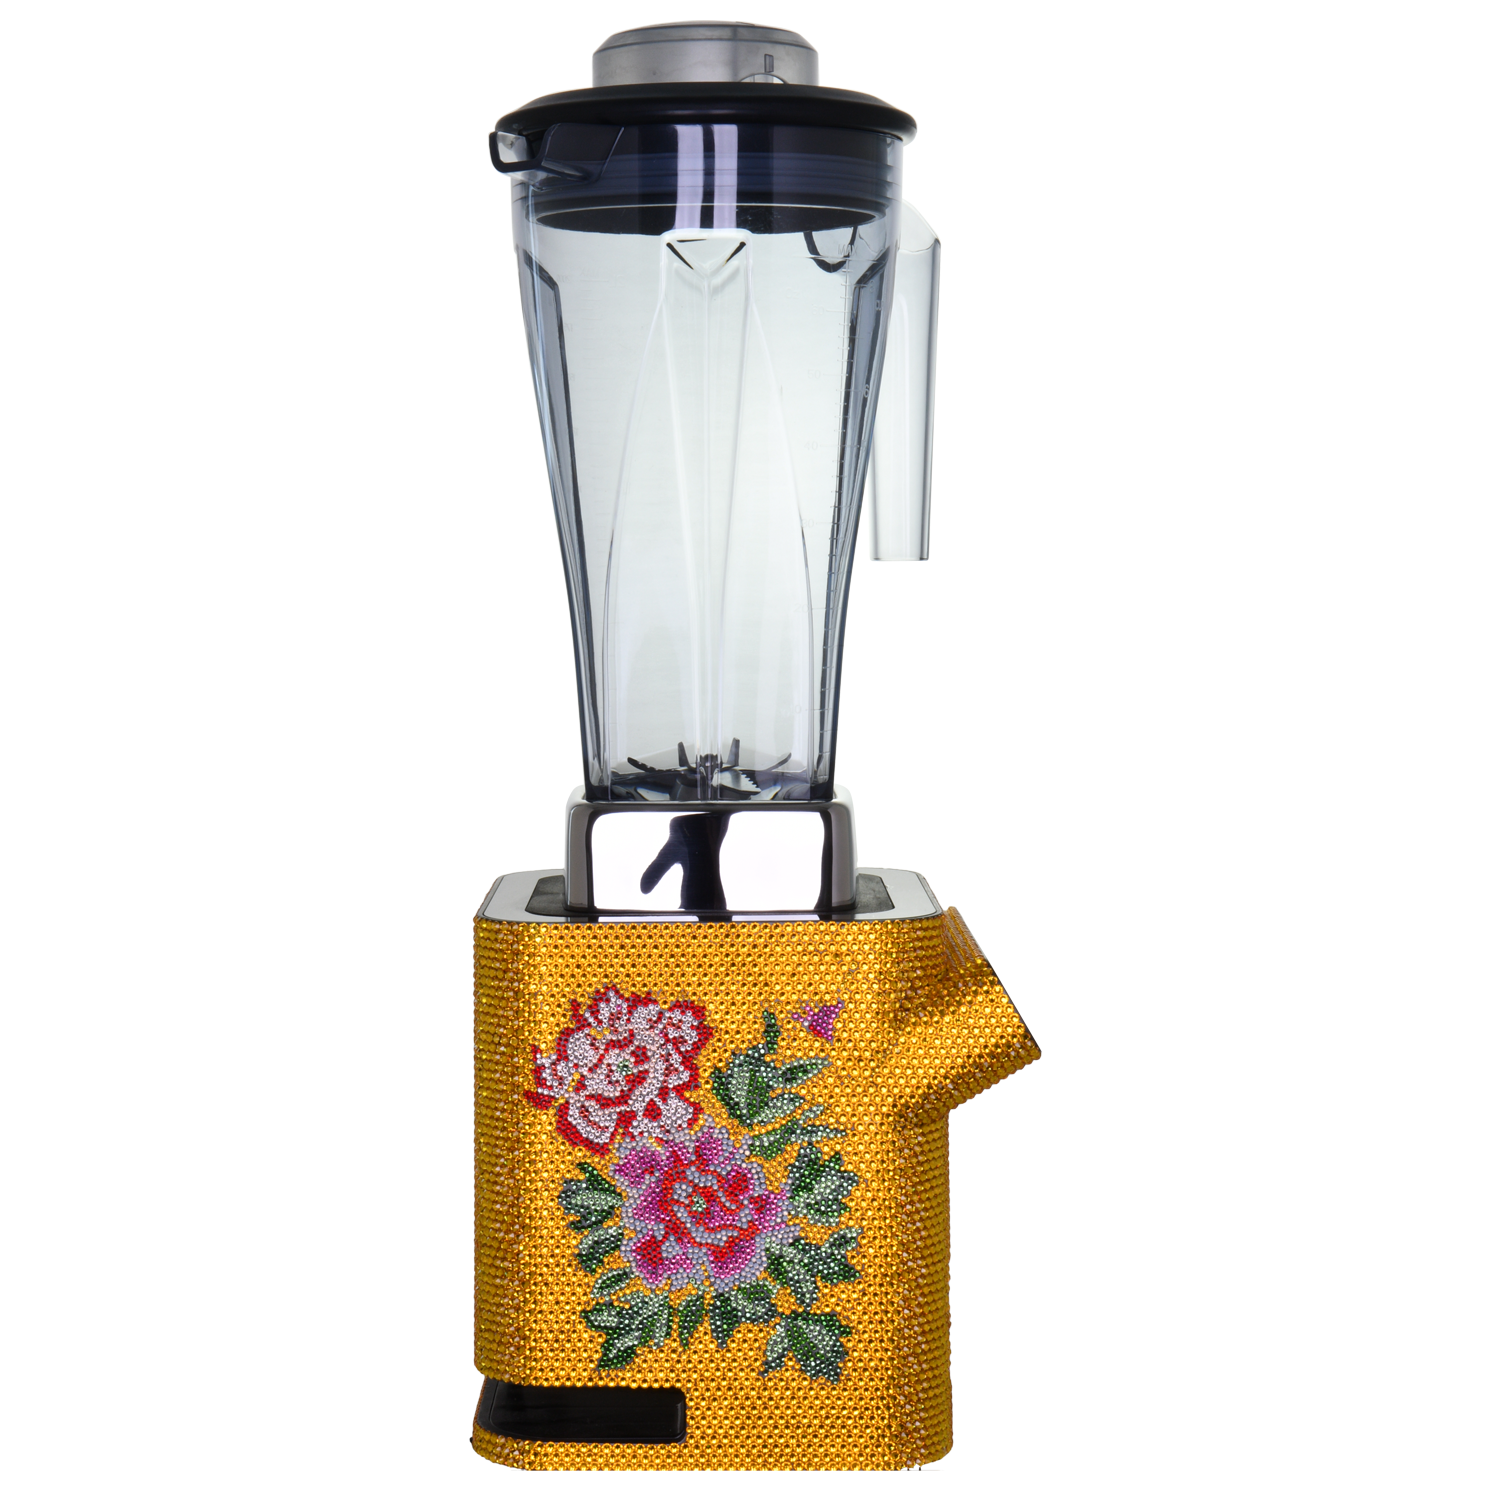 【PEONY】 Crystal Food Processor - THE SPARKLE COLLECTION by GERMAN POOL